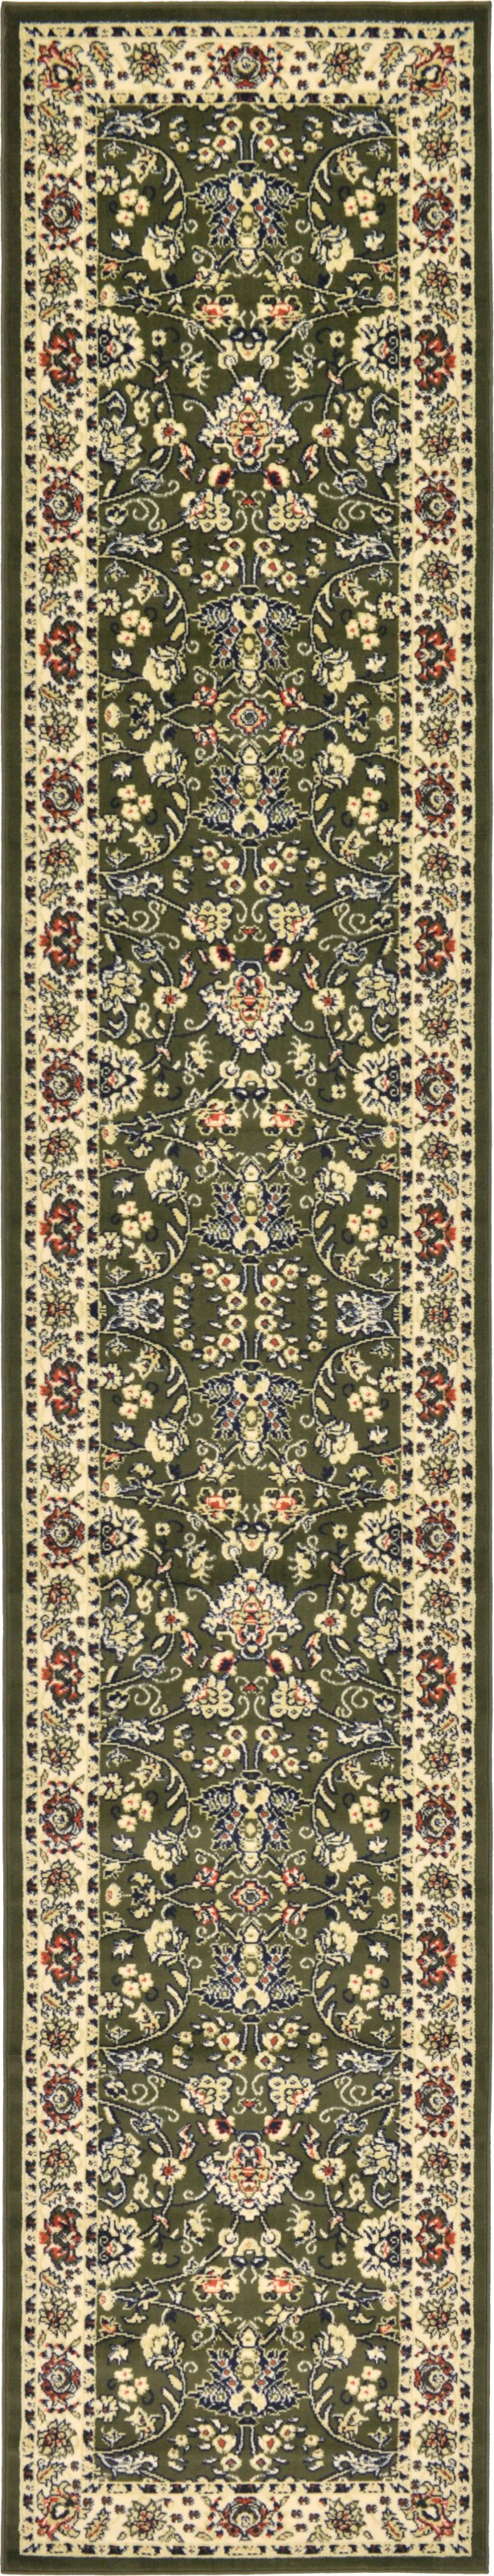 Essehoul Green Area Rug Rug Size: Runner 3' x 16'5